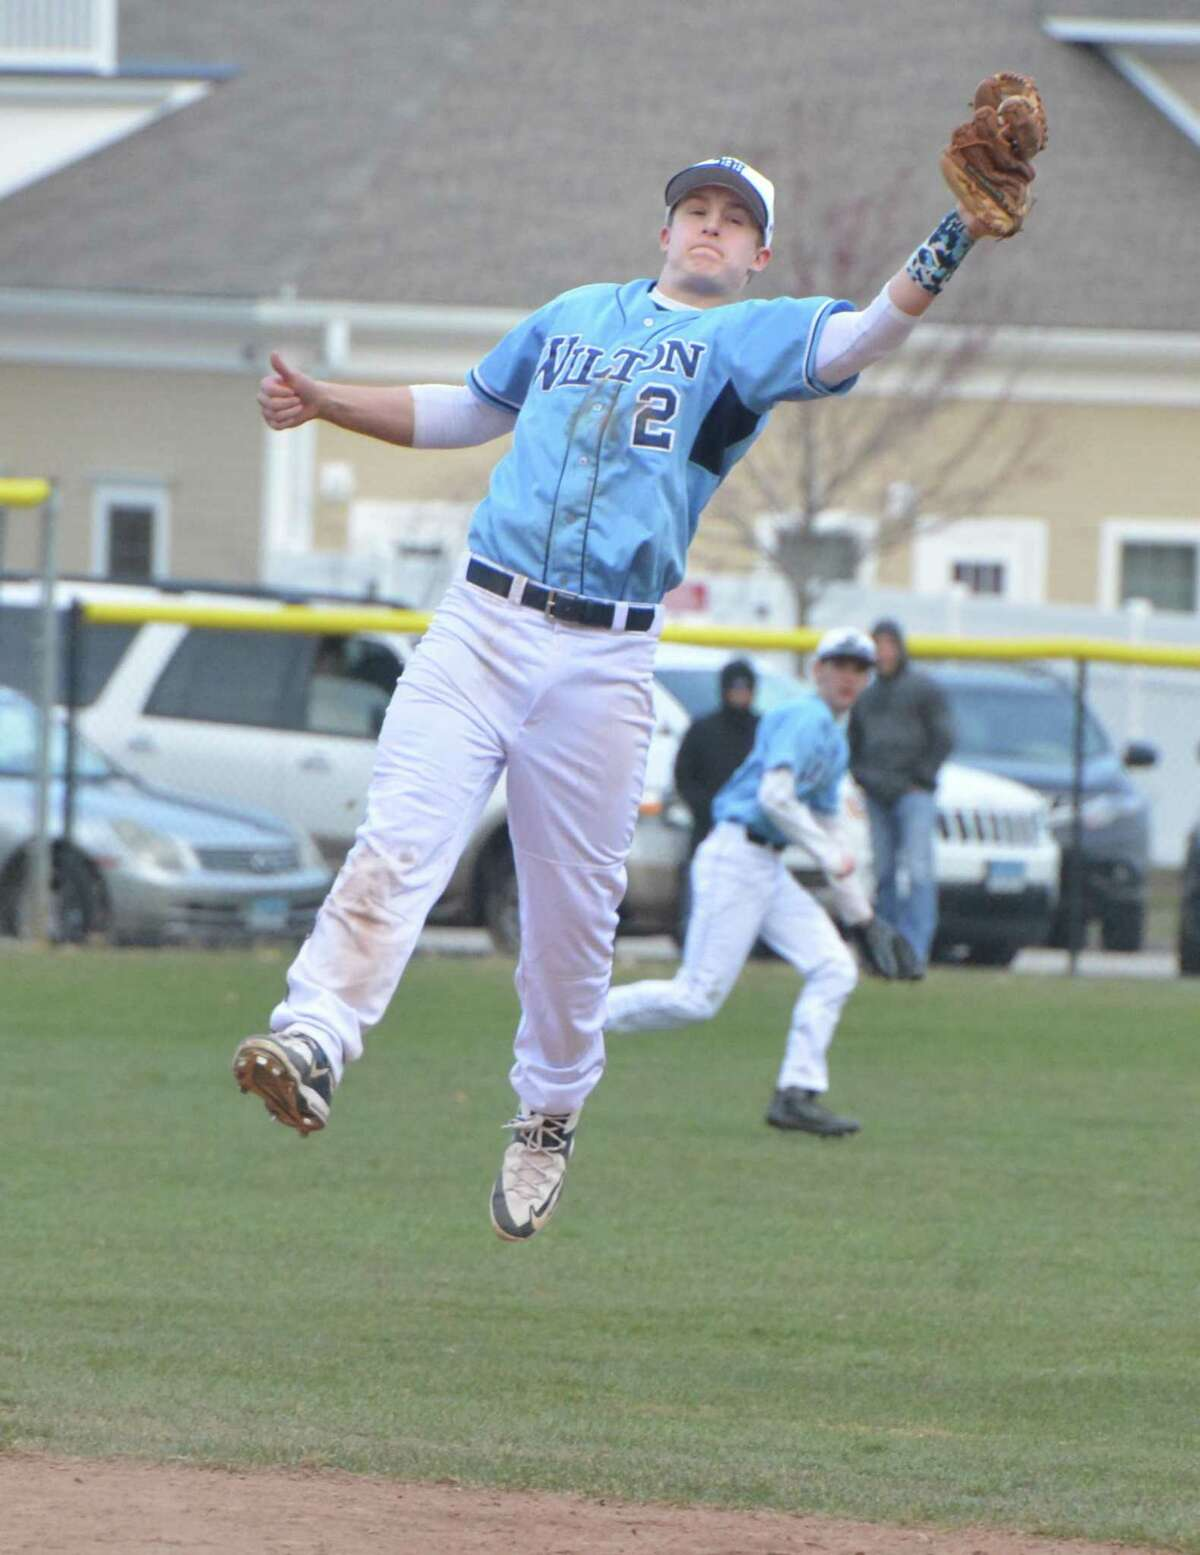 Wilton's Drew Phillips makes the leap and the line-drive catch against Norwalk.